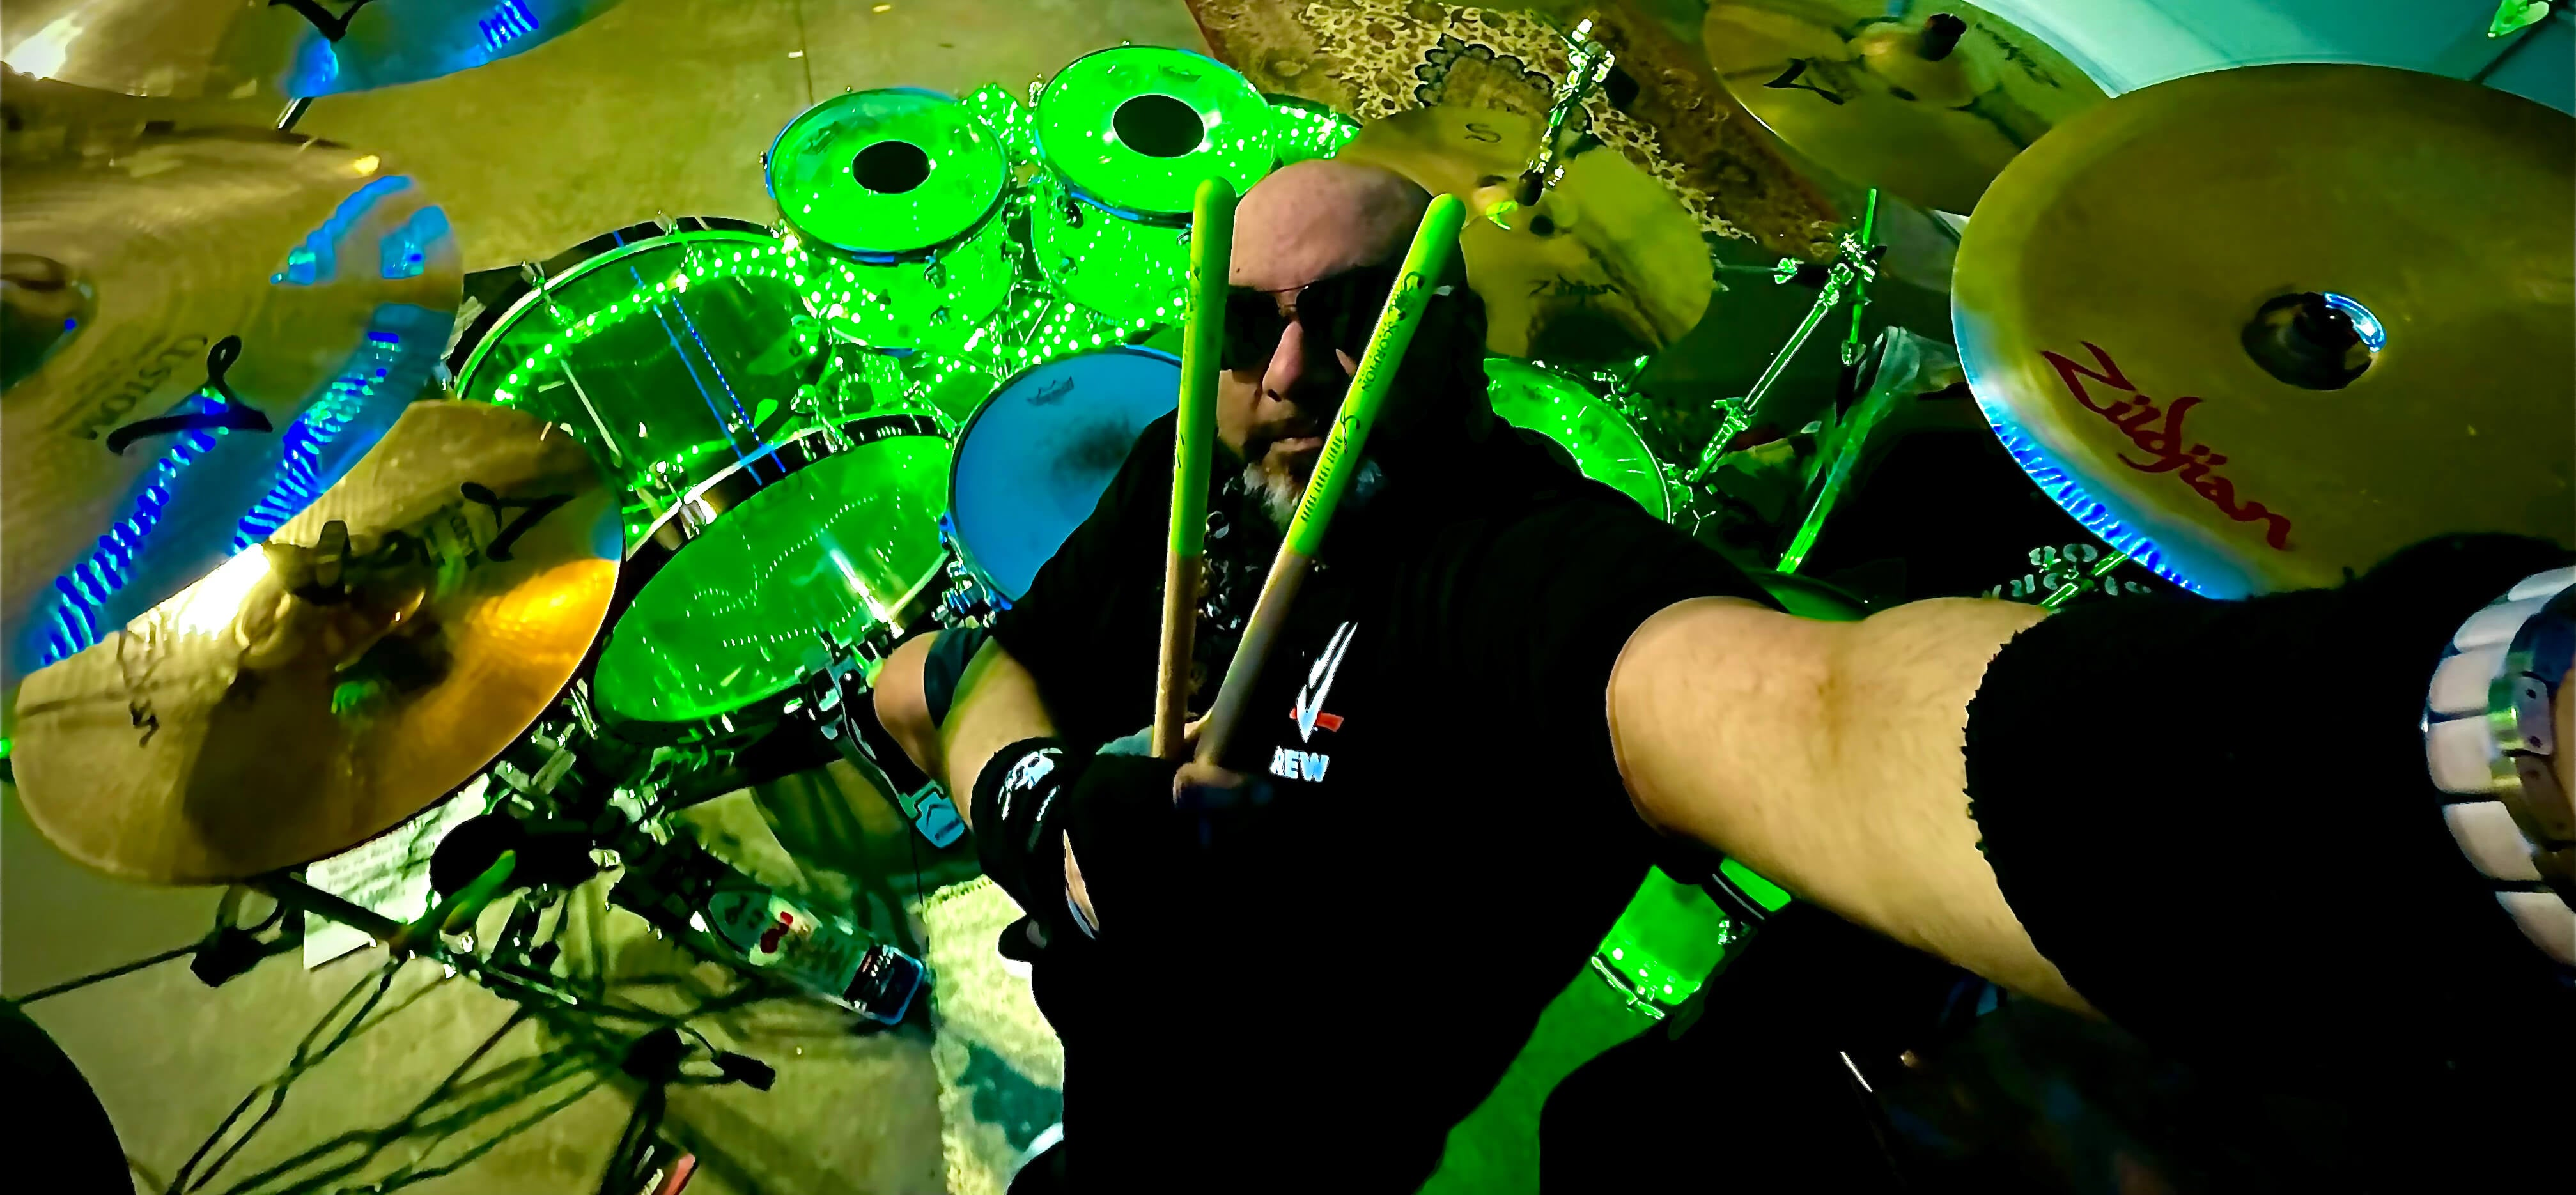 Drummer Sonny Sudra poses with Scorpion Percussion drumsticks behind his drumkit